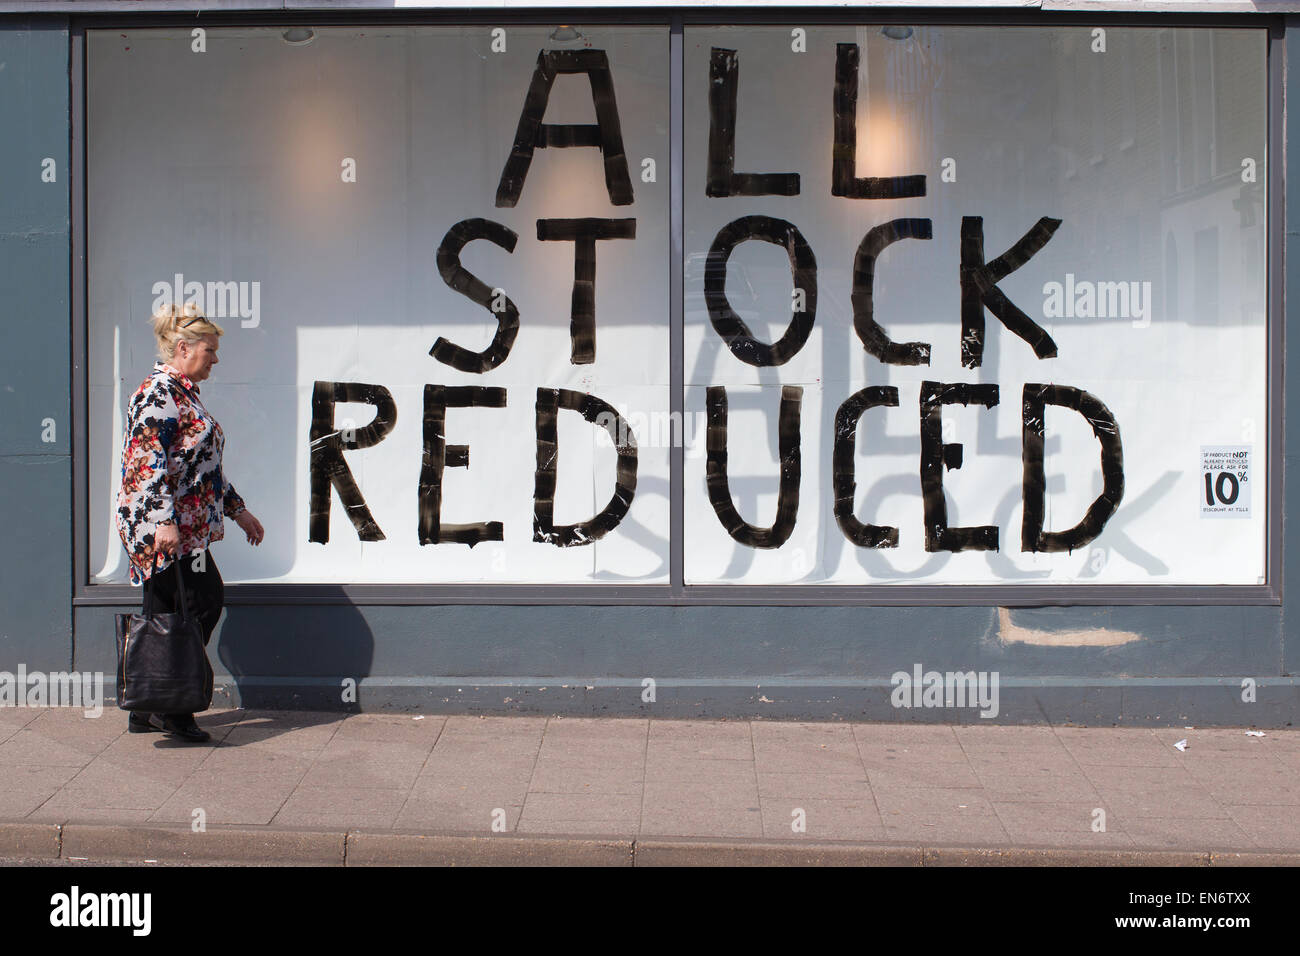 ALL STOCK REDUCED sign on high street shop window where the economic growth shows signs of slowing, Ramsgate, UK - Stock Image